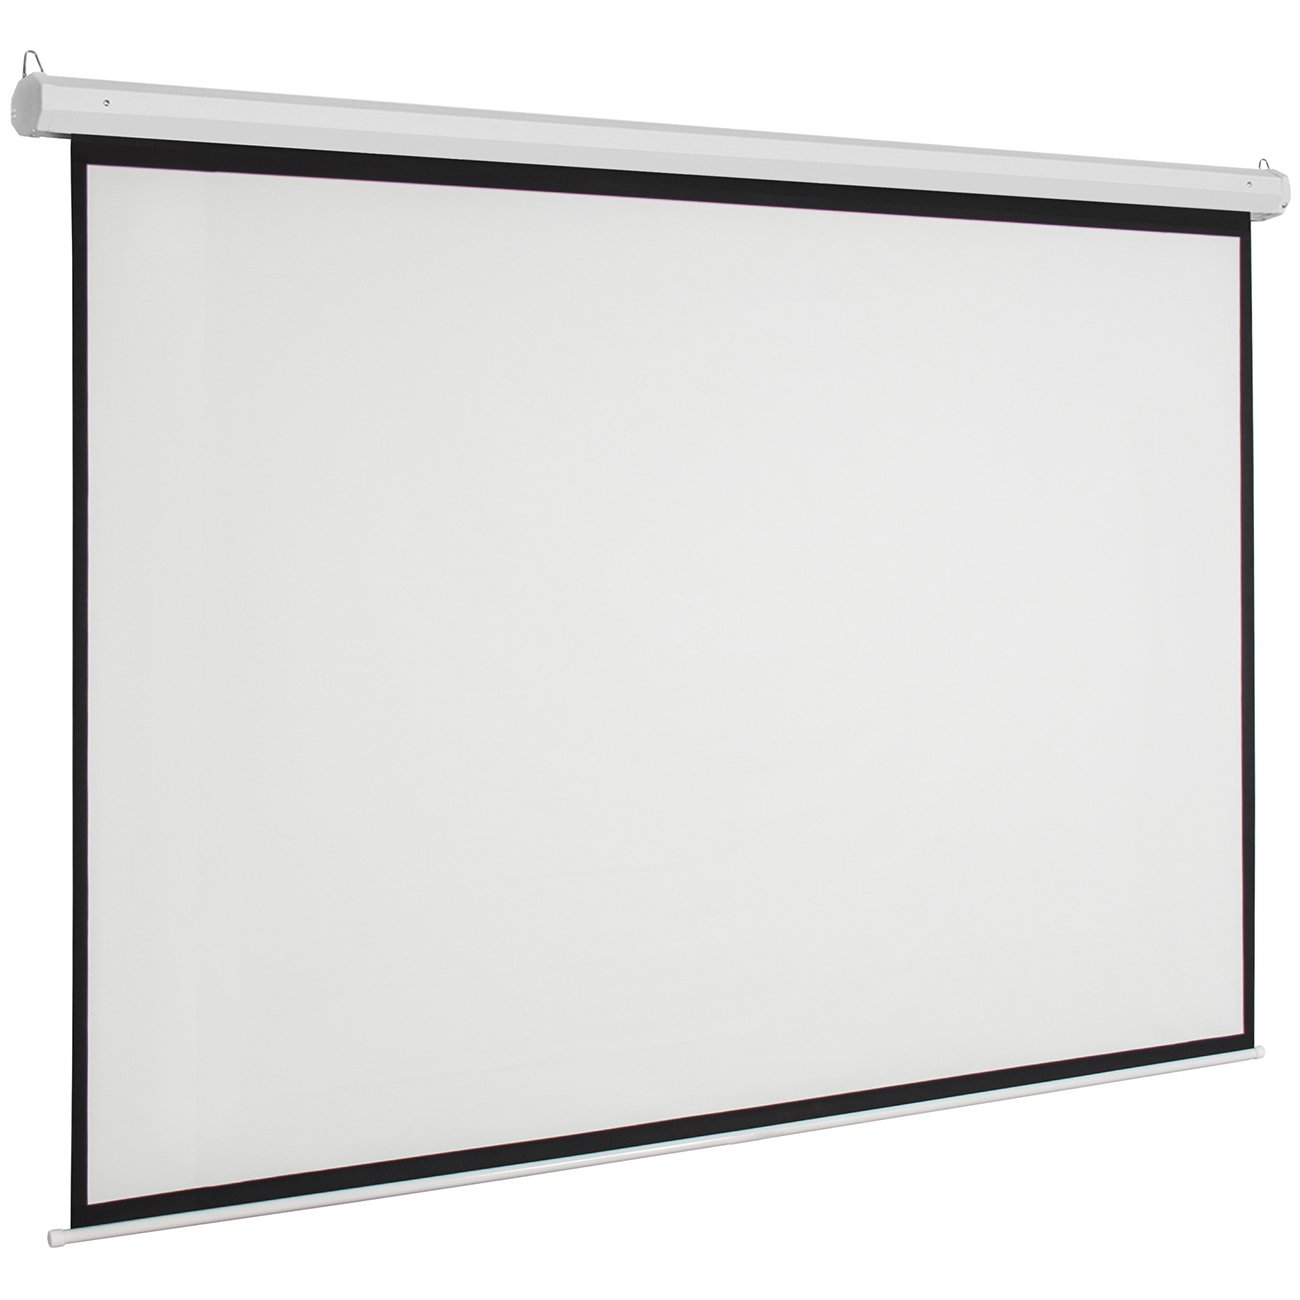 ARKSEN Foldable Electric Motorized Projector Screen w/Remote Control, 16:9, 100'' by ARKSEN (Image #3)